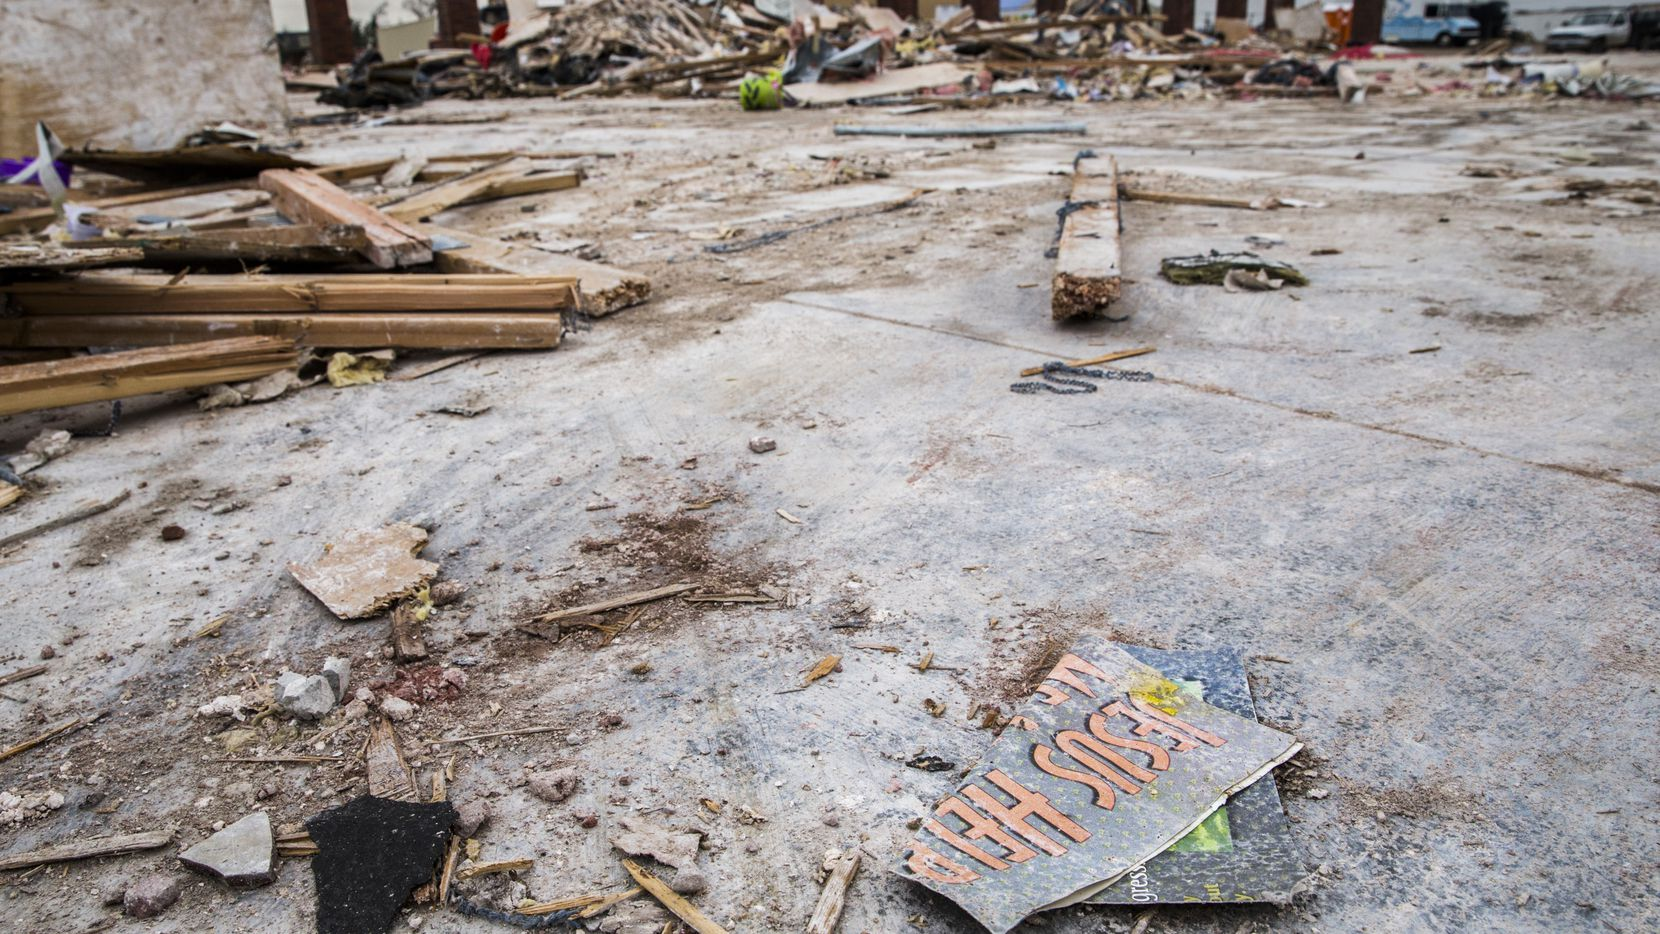 """A pamphlet reading """"Jesus Help"""" lays among the debris at the site of Primera Iglesia Bautista Mexicana on Tuesday in Dallas. The church was destroyed by a tornado last month."""